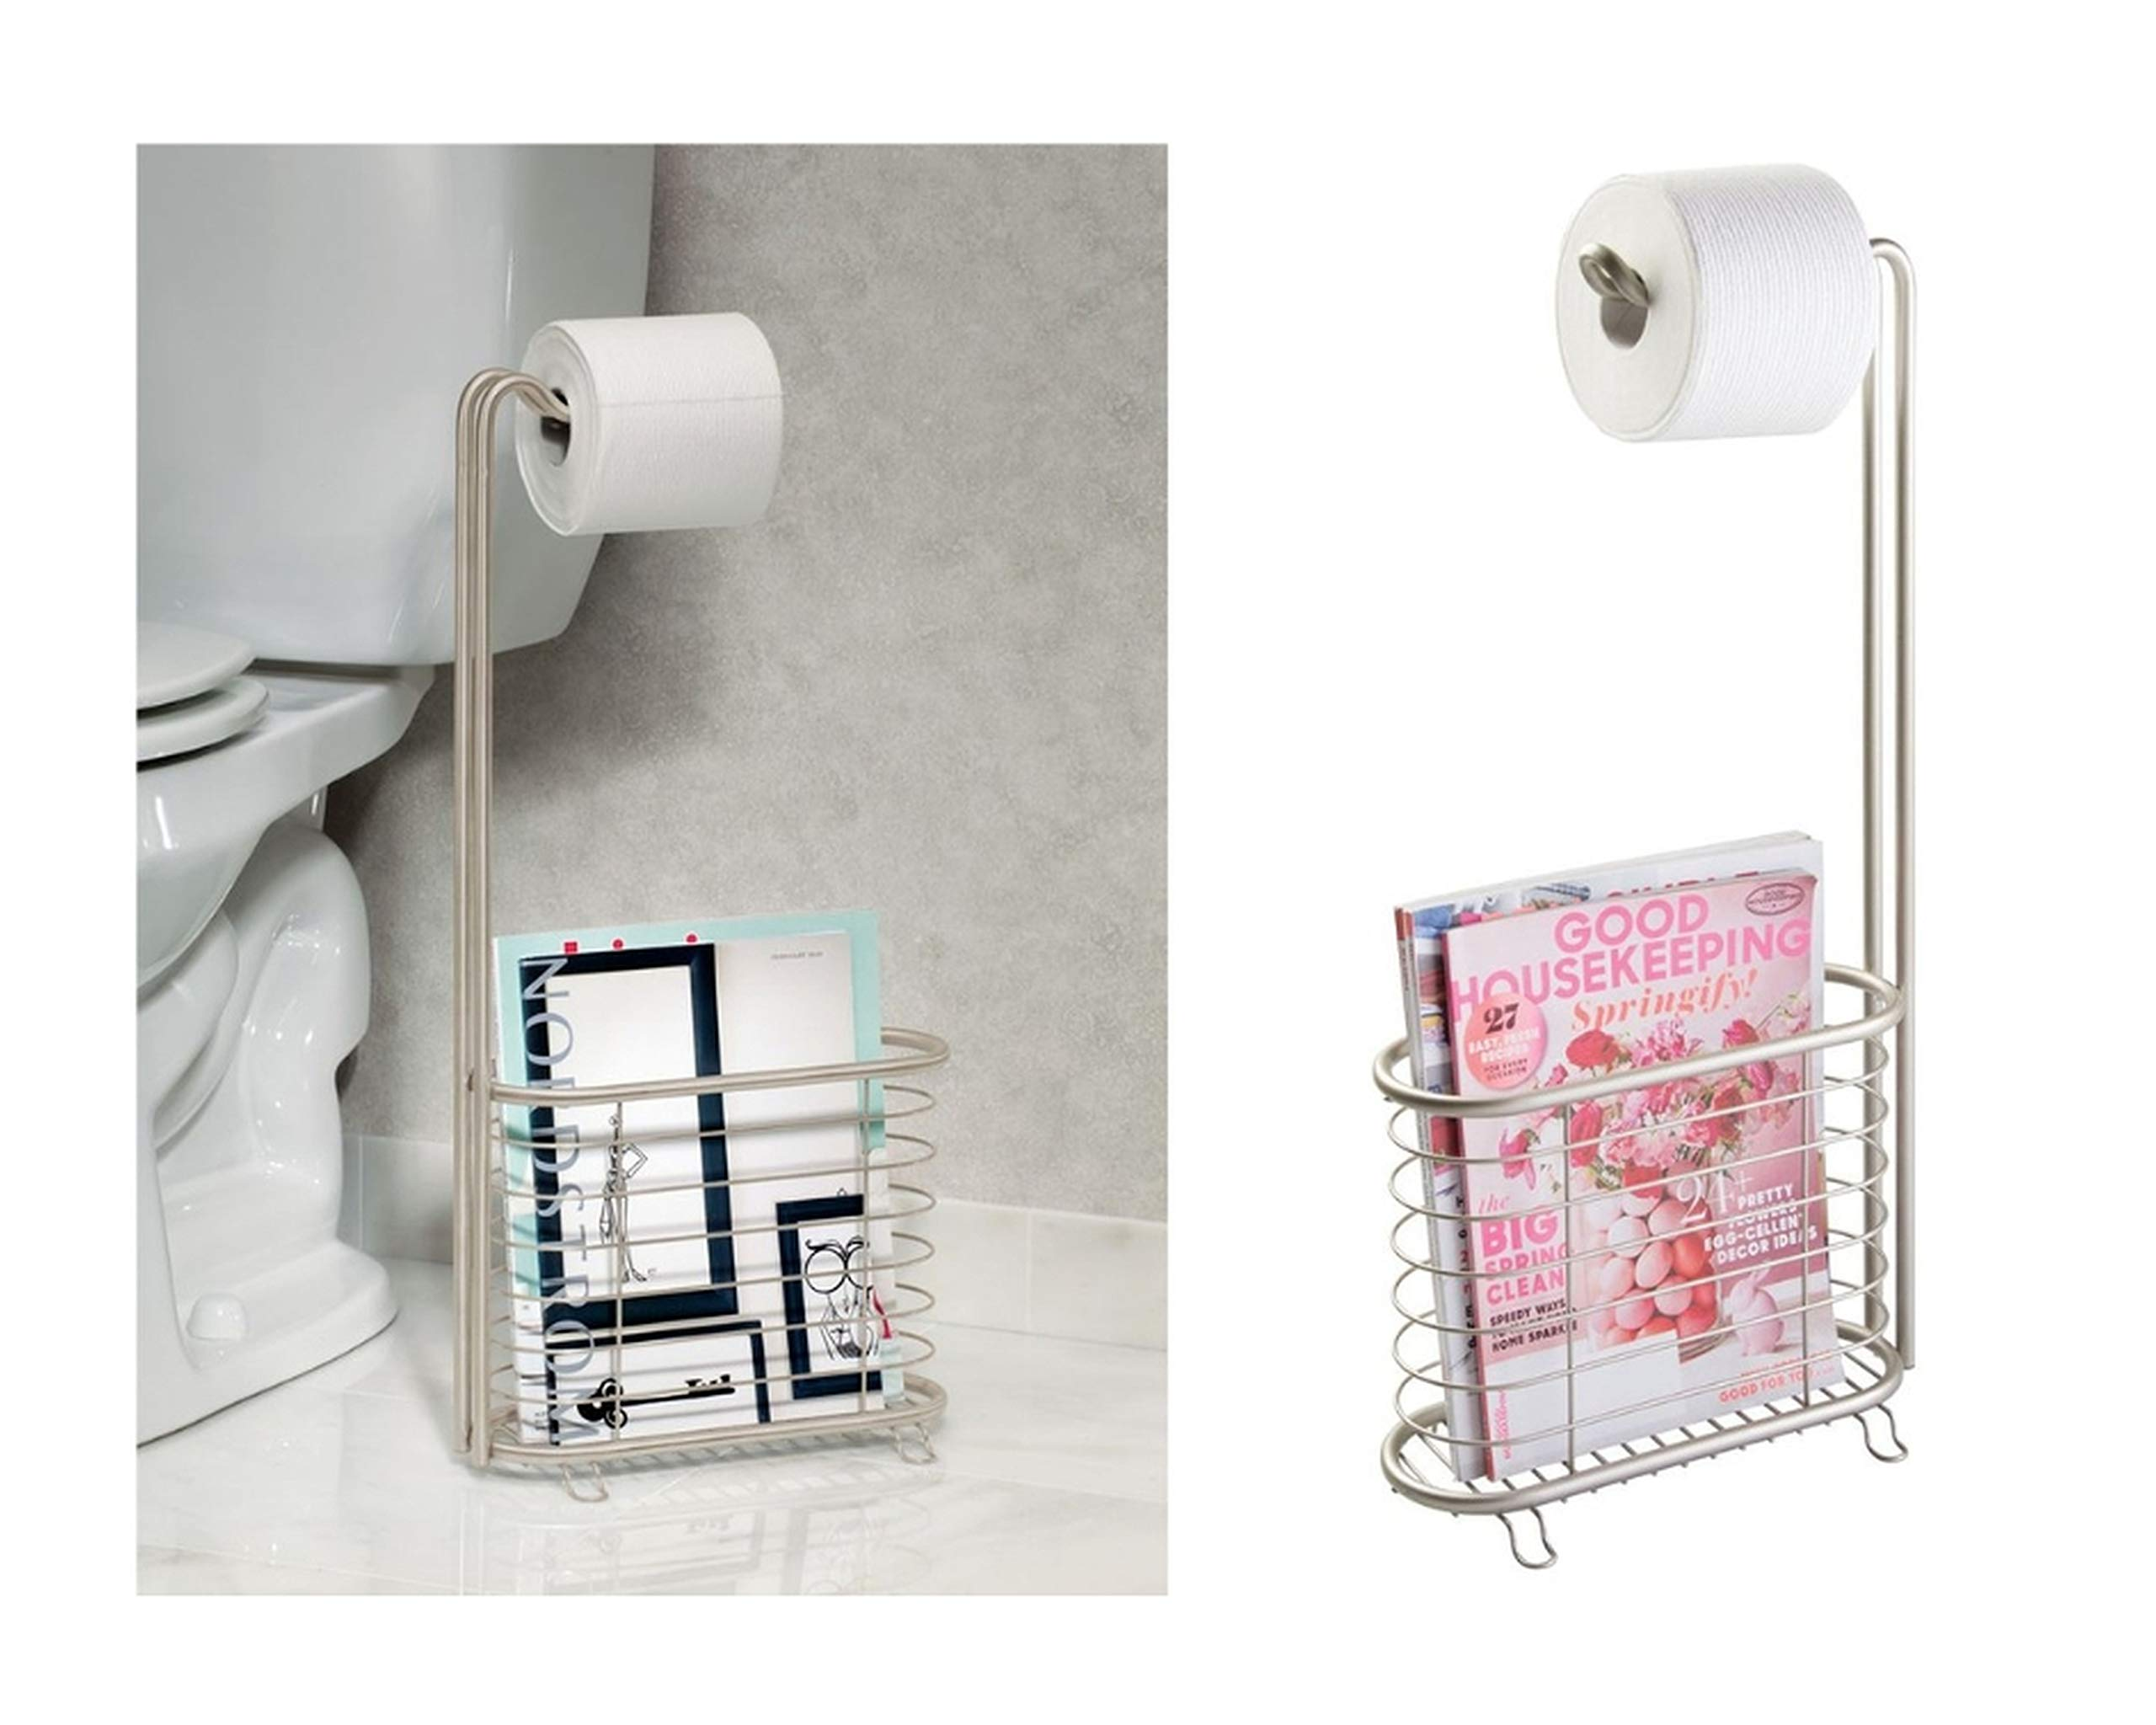 InterDesign Forma Free Standing Toilet Paper Holder and Newspaper and Magazine Rack for Bathroom - Satin